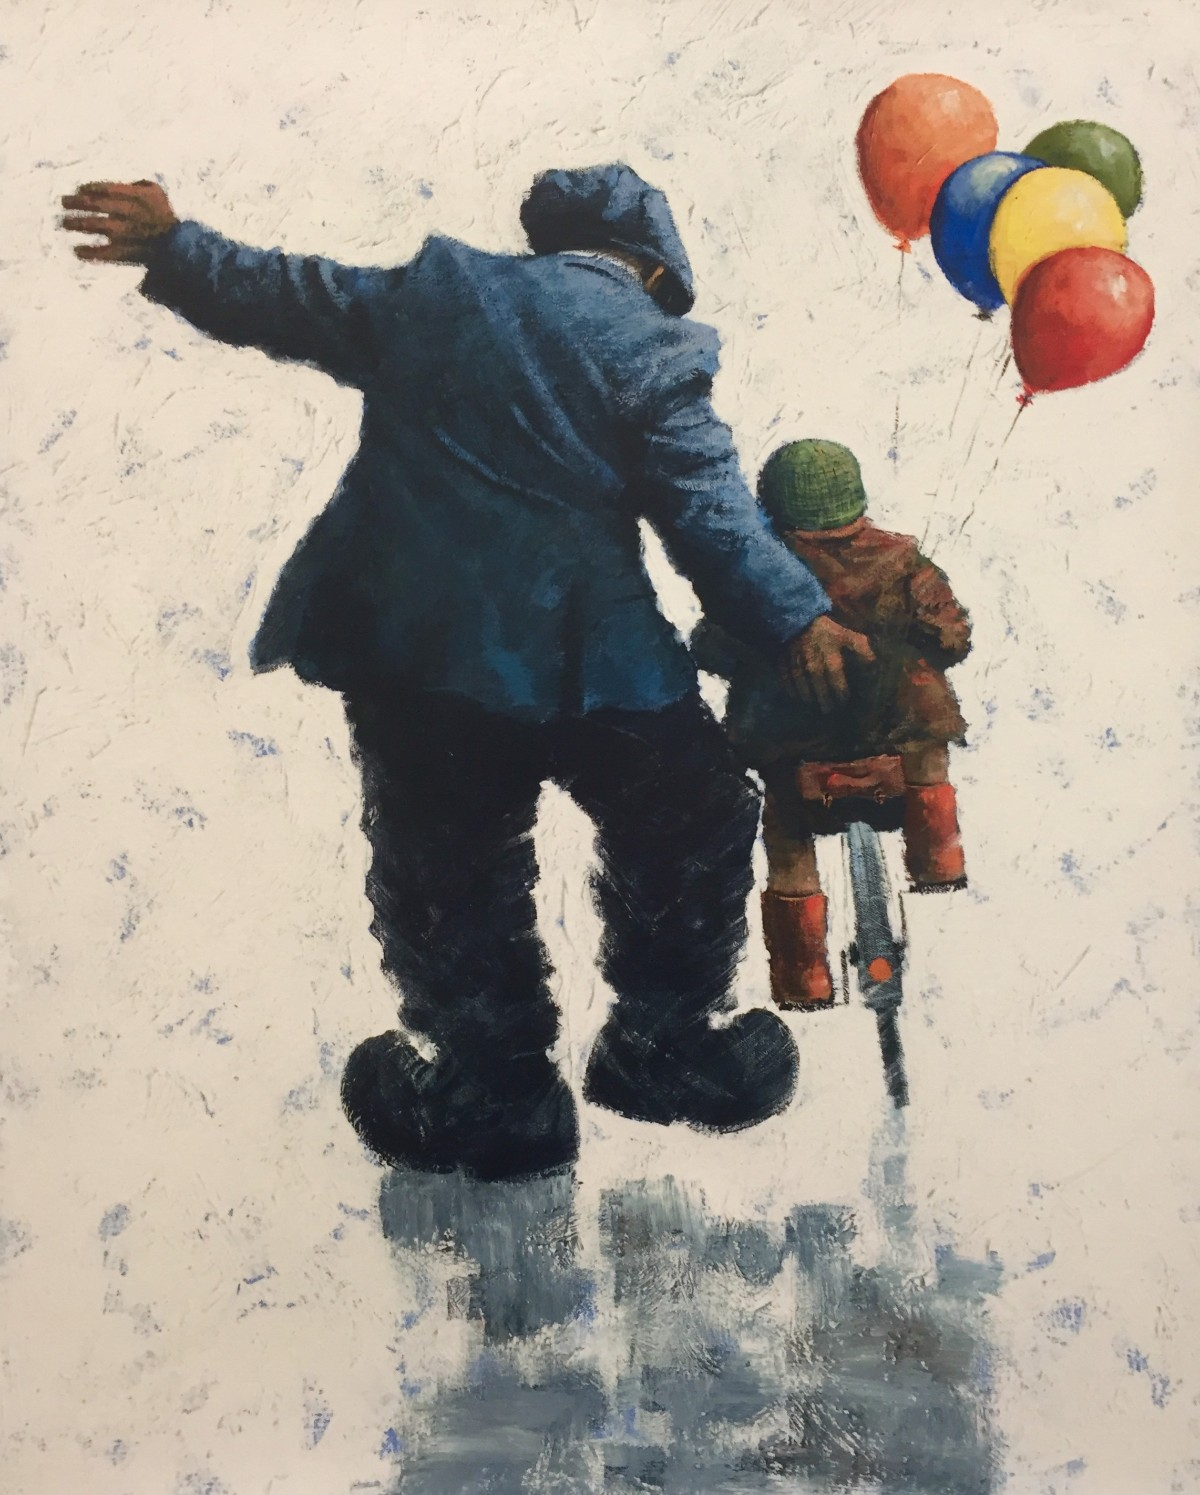 All you need is Love by Alexander Millar